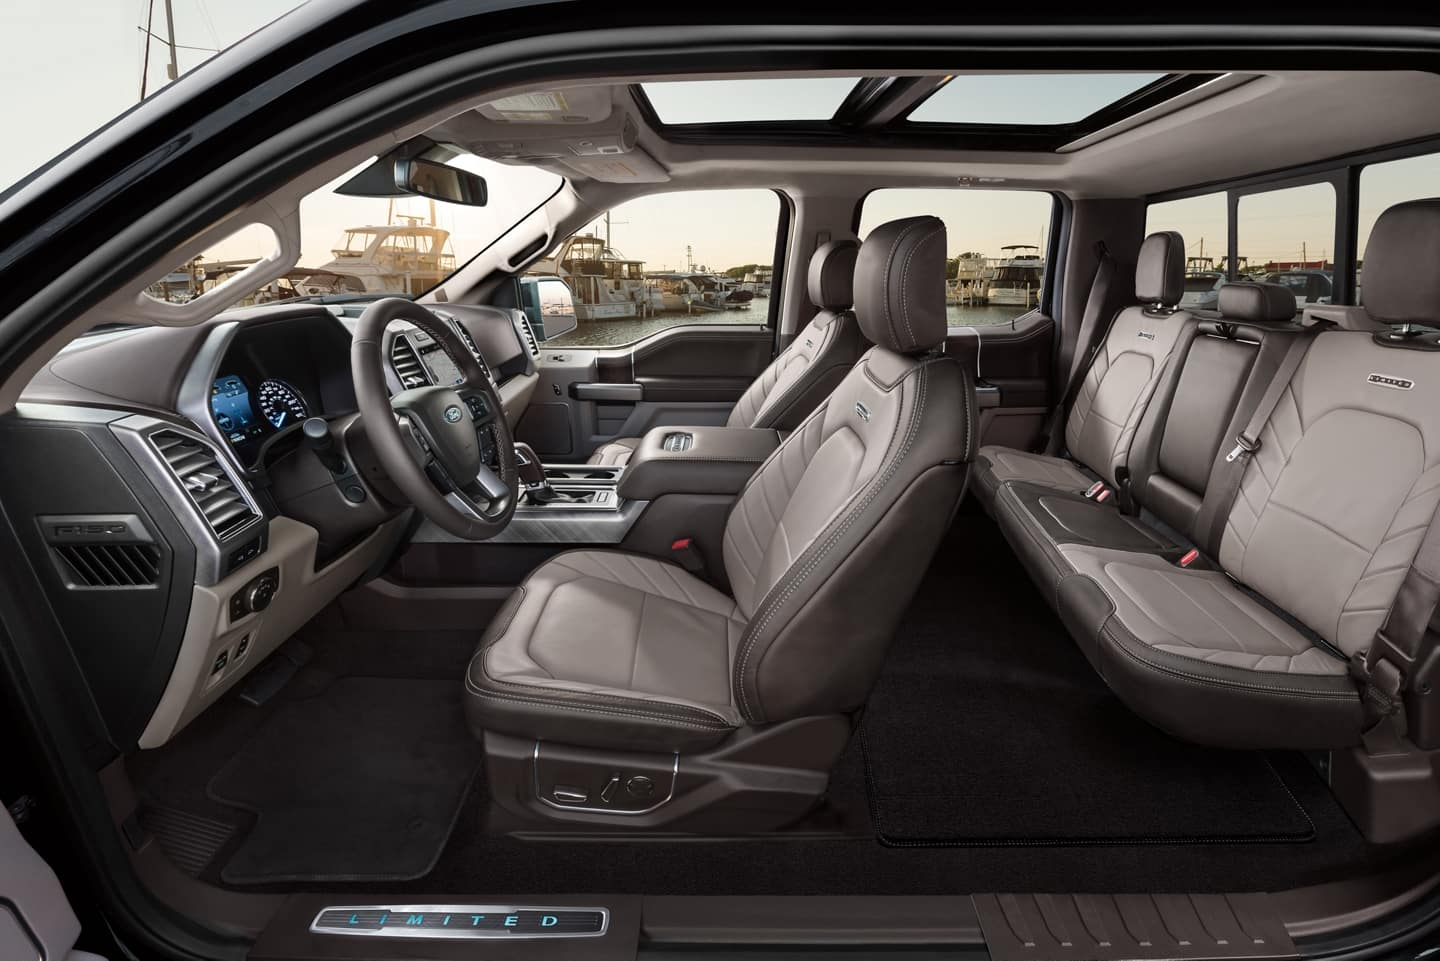 2020 Ford F-150 interior seating